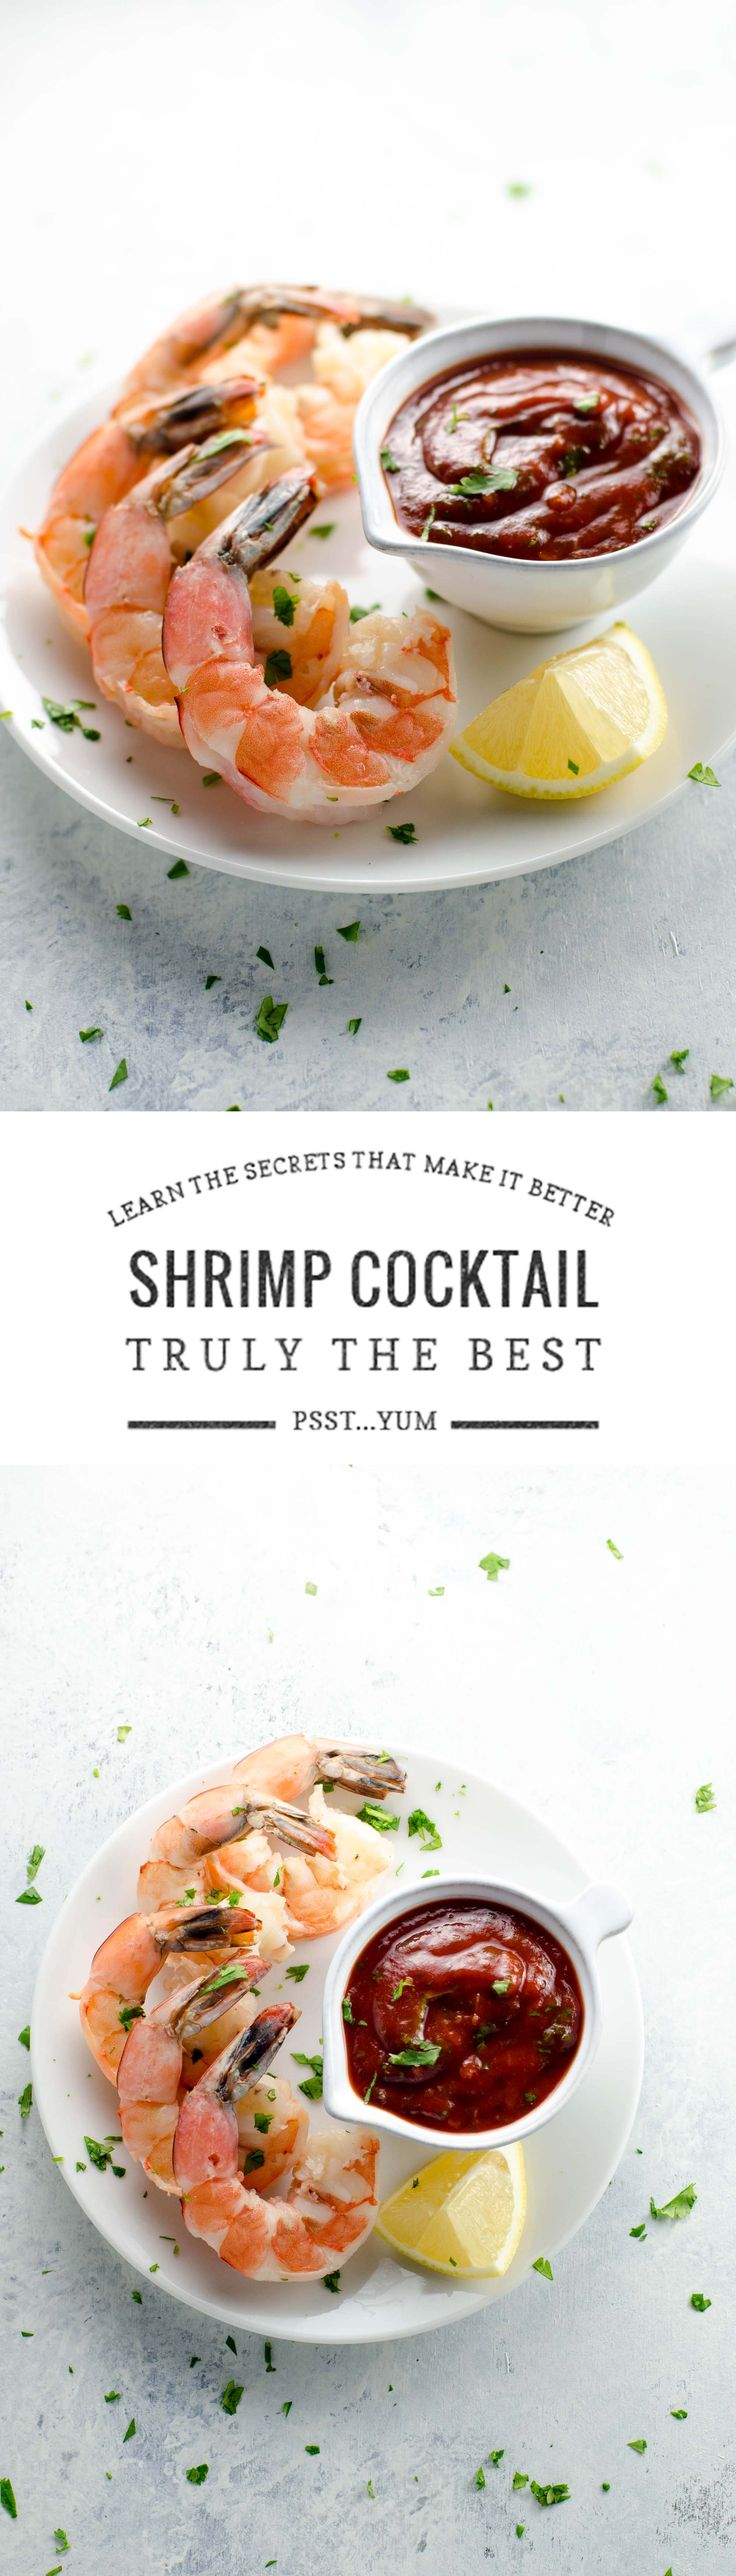 "I know it's ridiculous to say a recipe is ""the best,"" buuuuuutttttt this is seriously the best shrimp cocktail recipe ever. Everyone who tries it agrees."